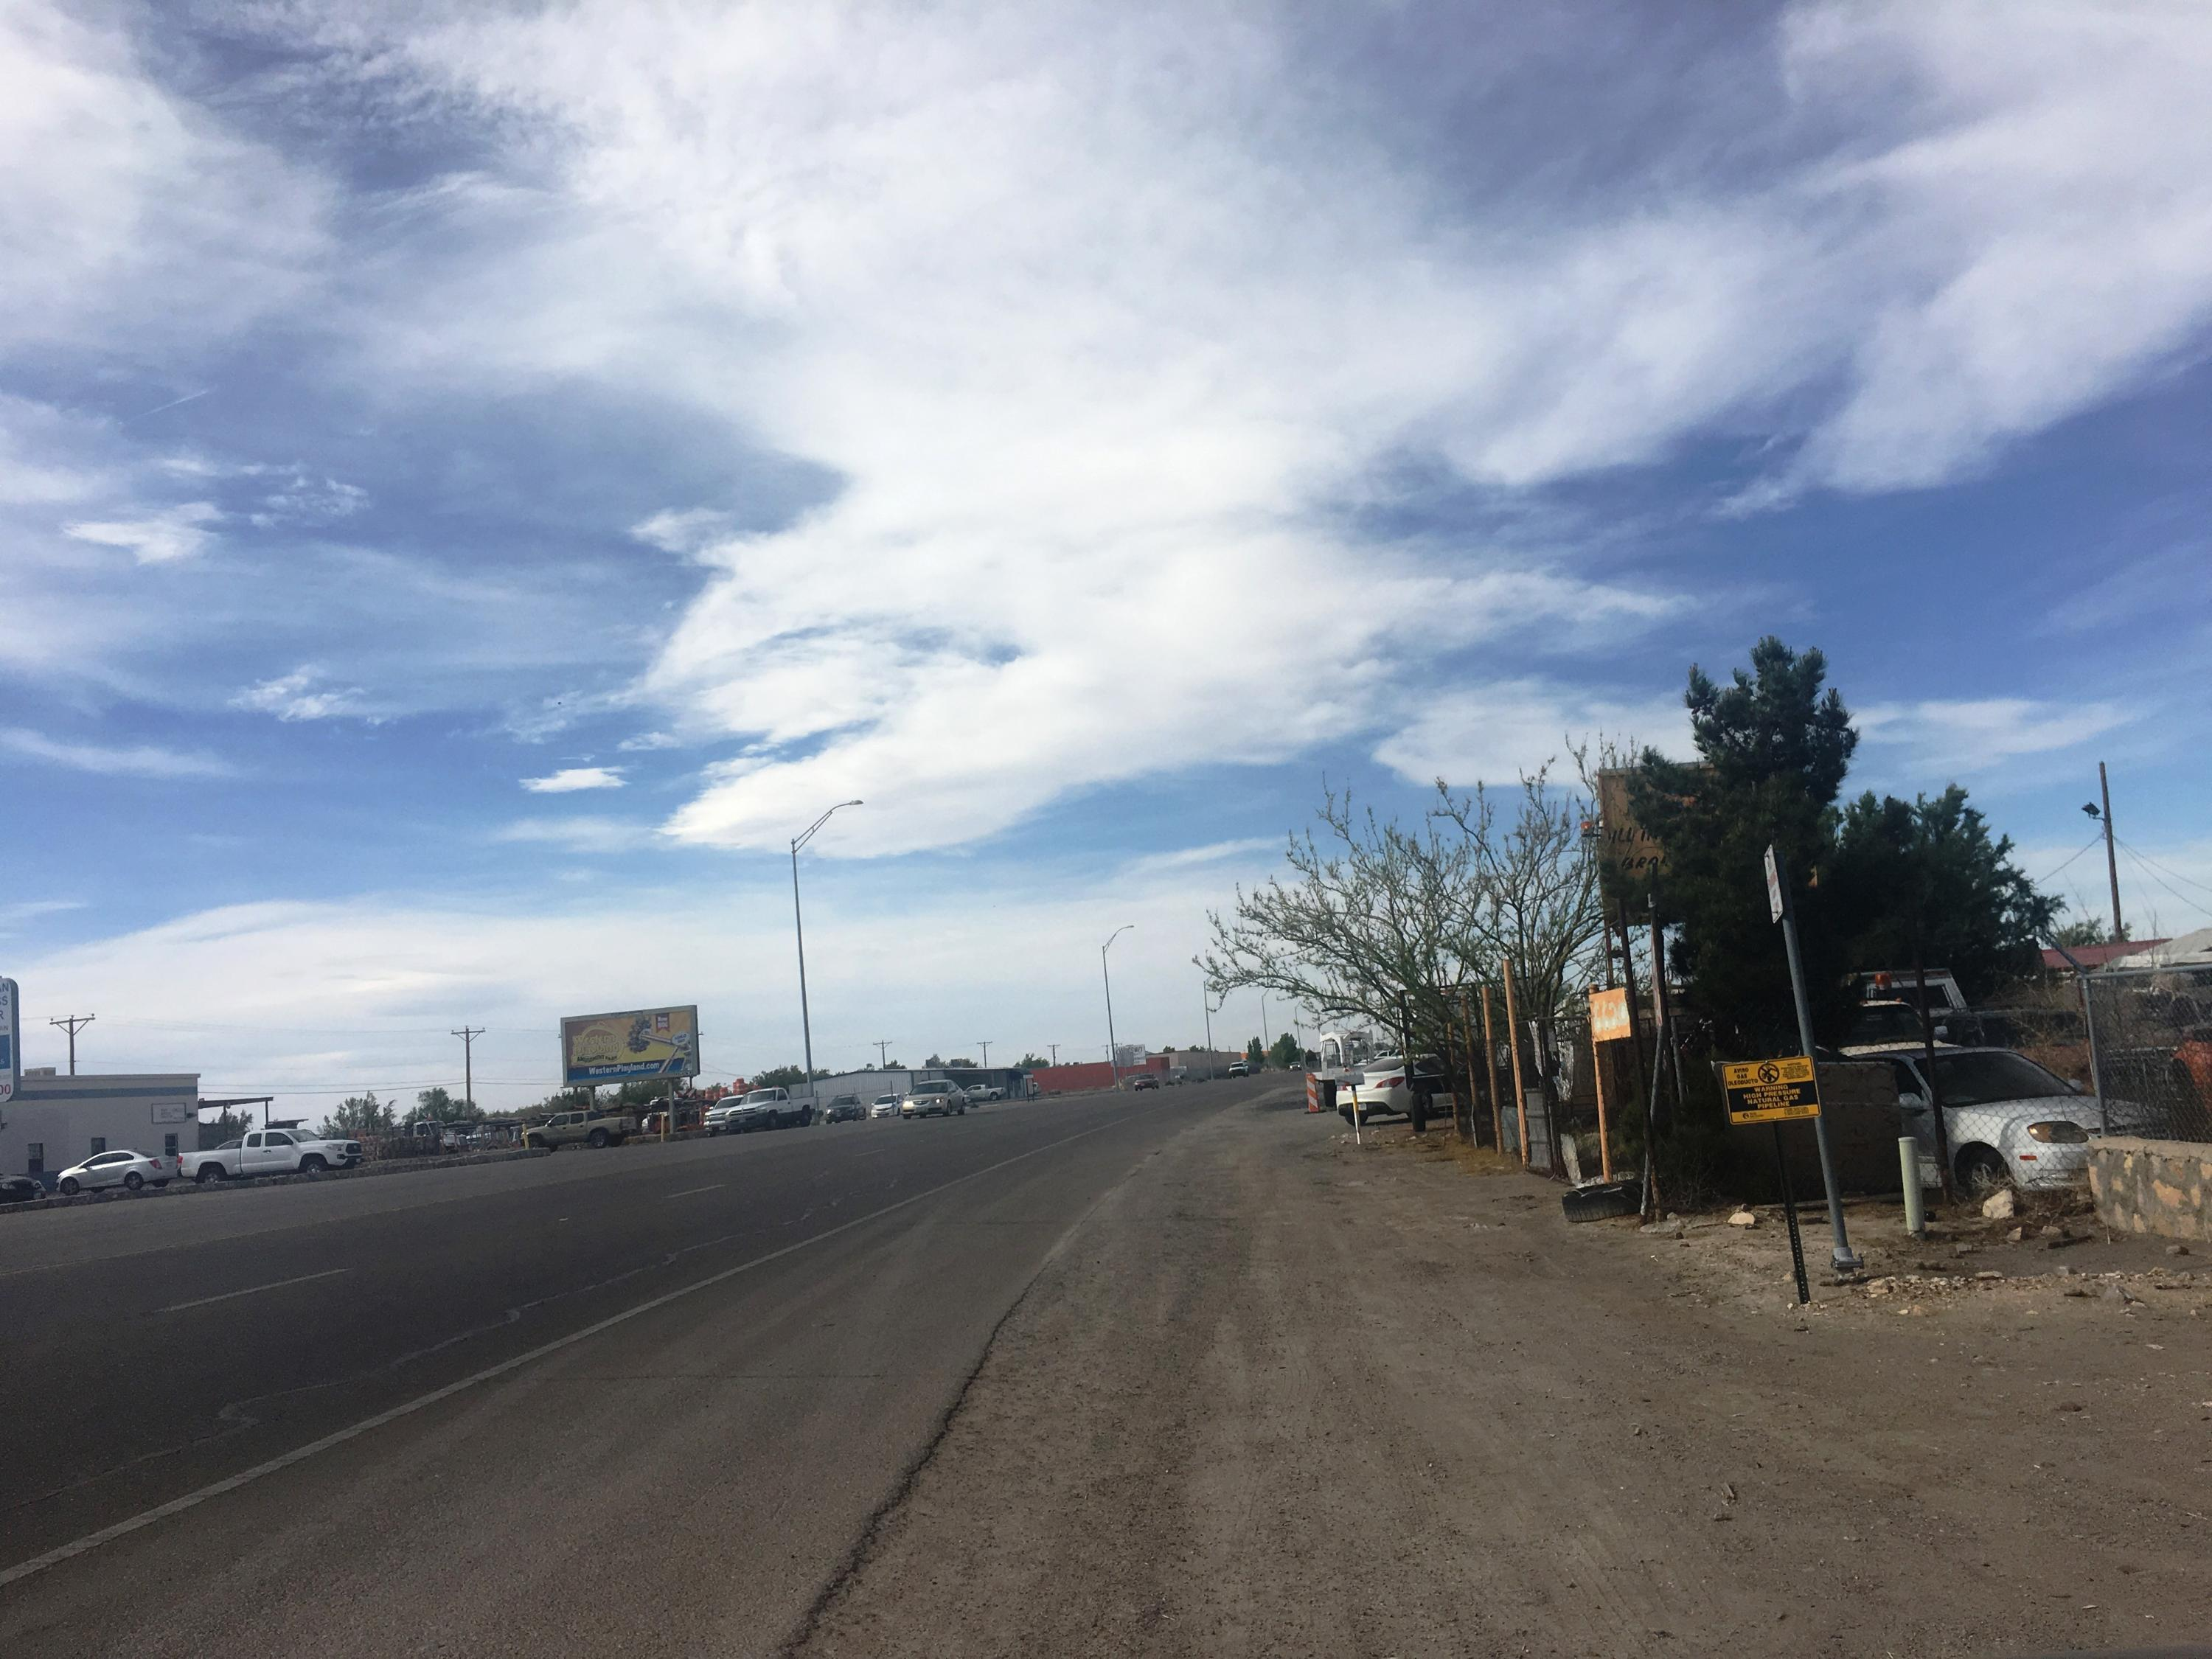 6606 DONIPHAN Drive, Canutillo, Texas 79835, ,Commercial,For sale,DONIPHAN,835881